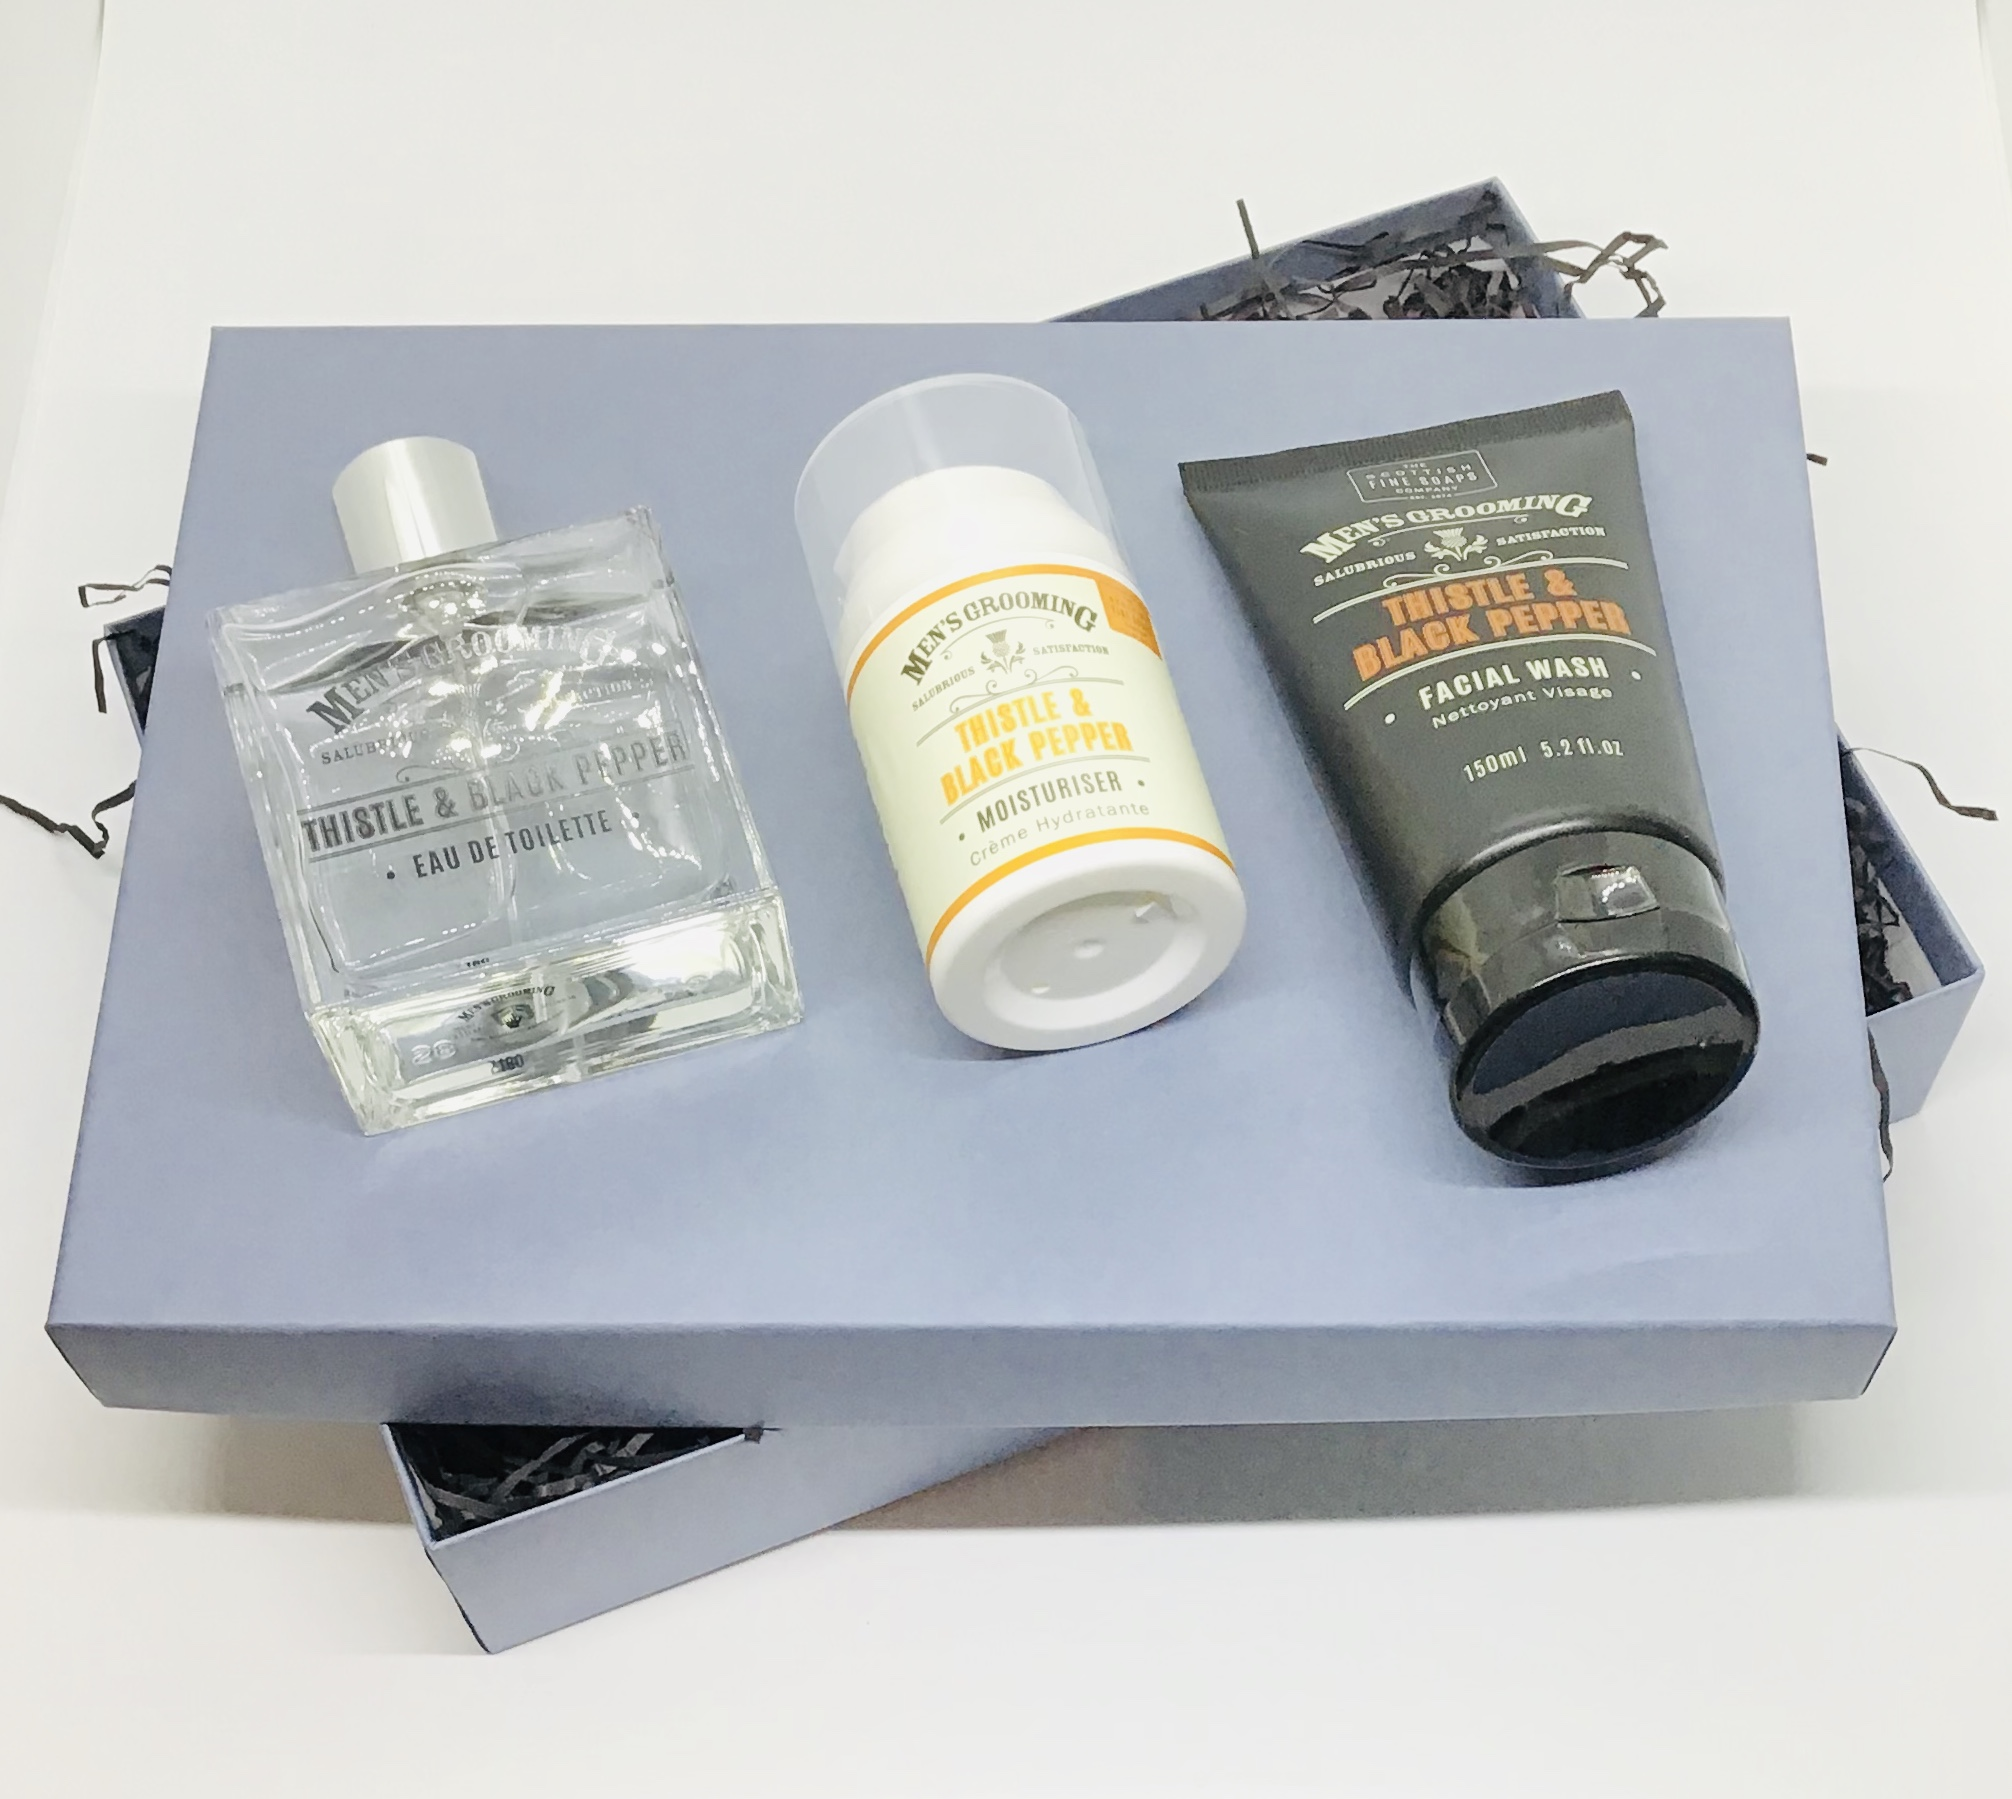 Blackpepper Eau de toilette, face wash  and moisturiser gift box